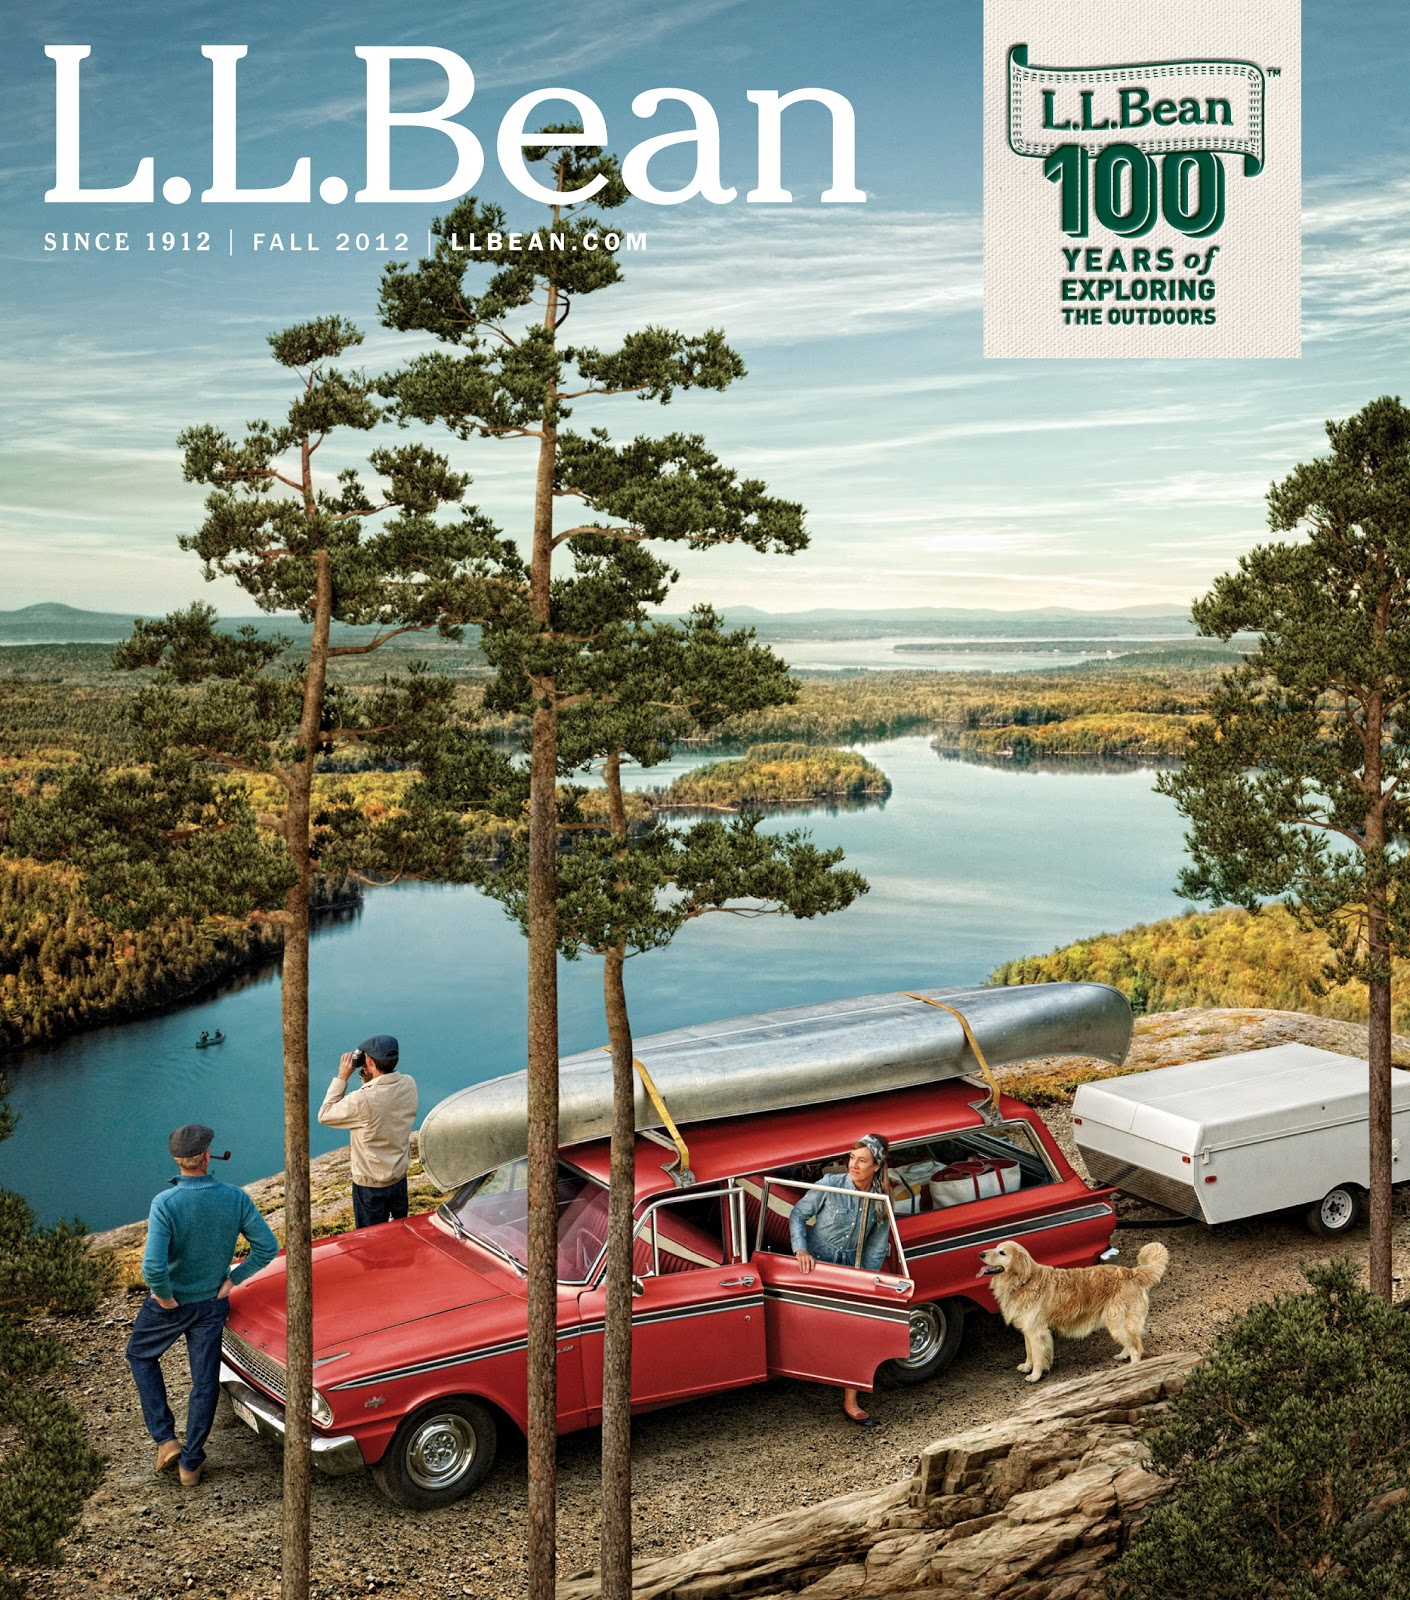 The Spring 1966 LL Bean catalog reproduced in 2012 for Bean's 100th anniversary catalog.